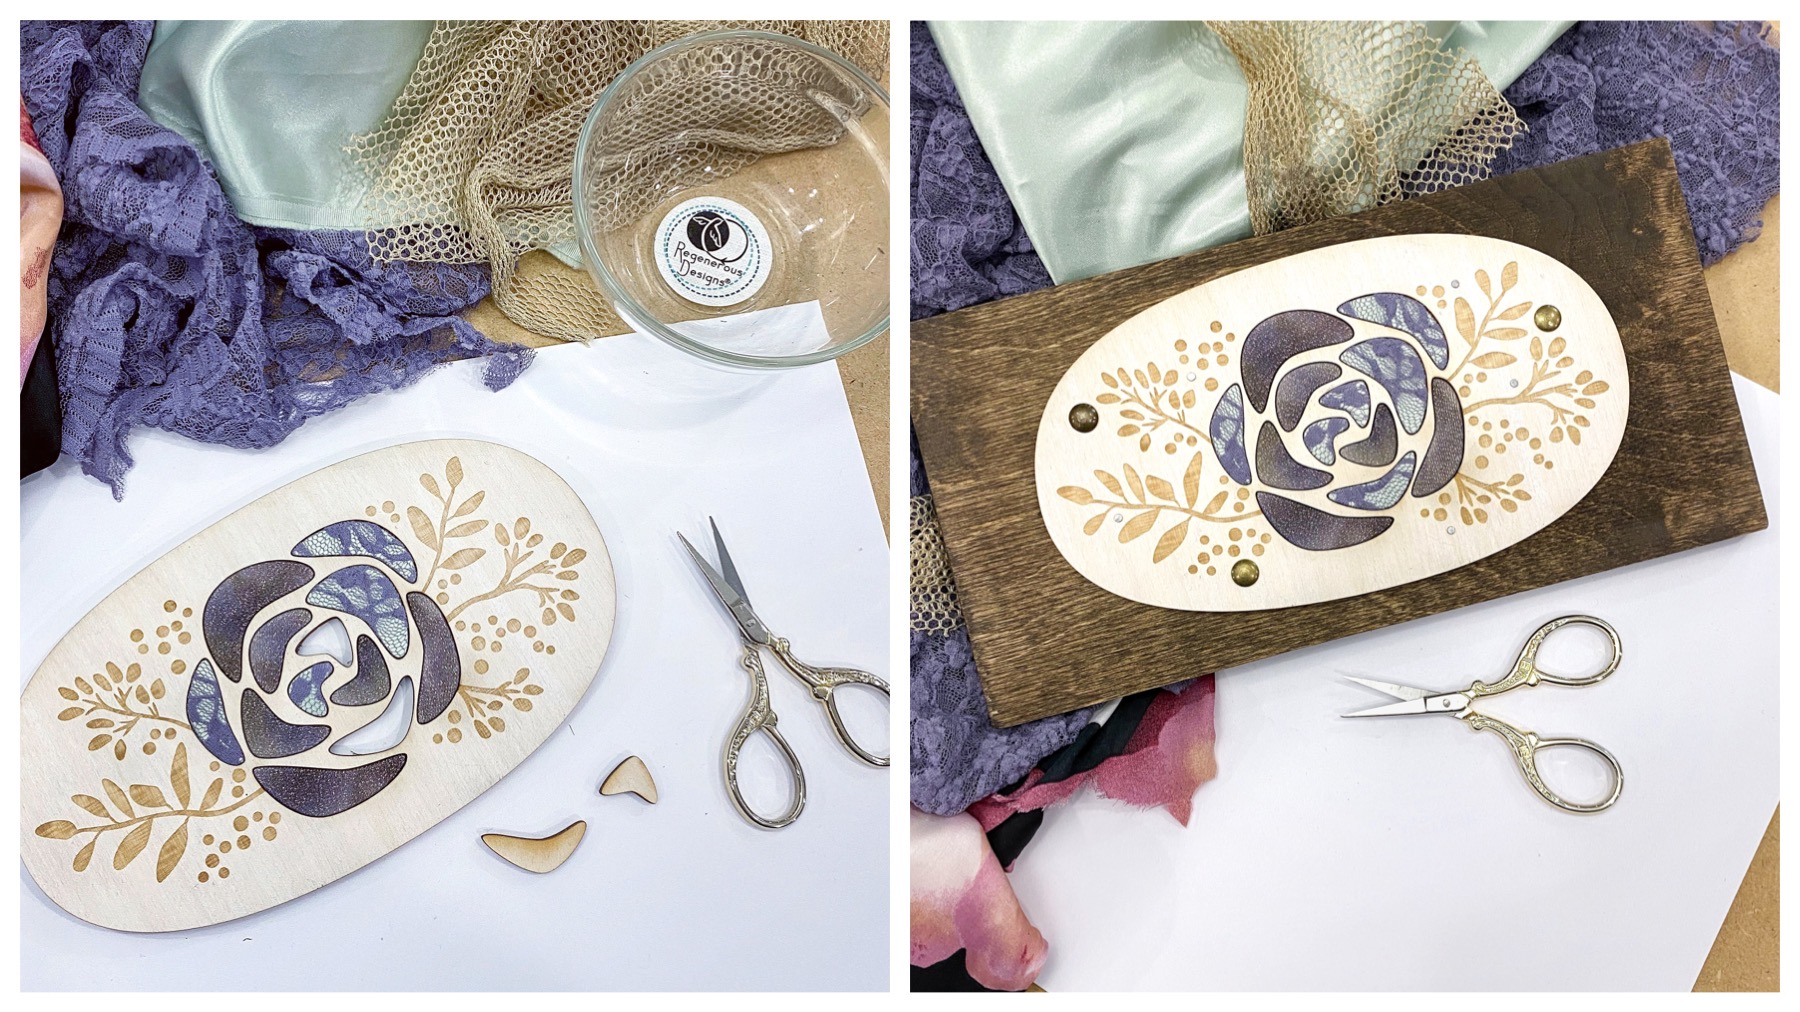 DIY art kit craft project - textile and wood flower